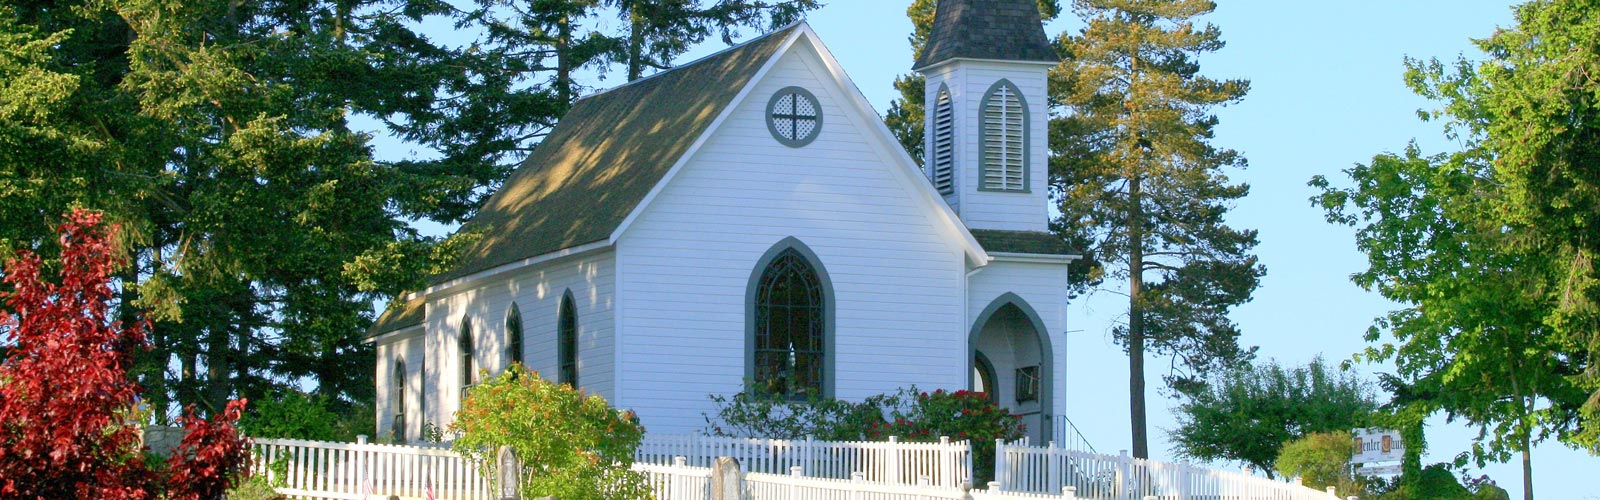 lopez island church catholic wedding venue historic union cemetery Center Church